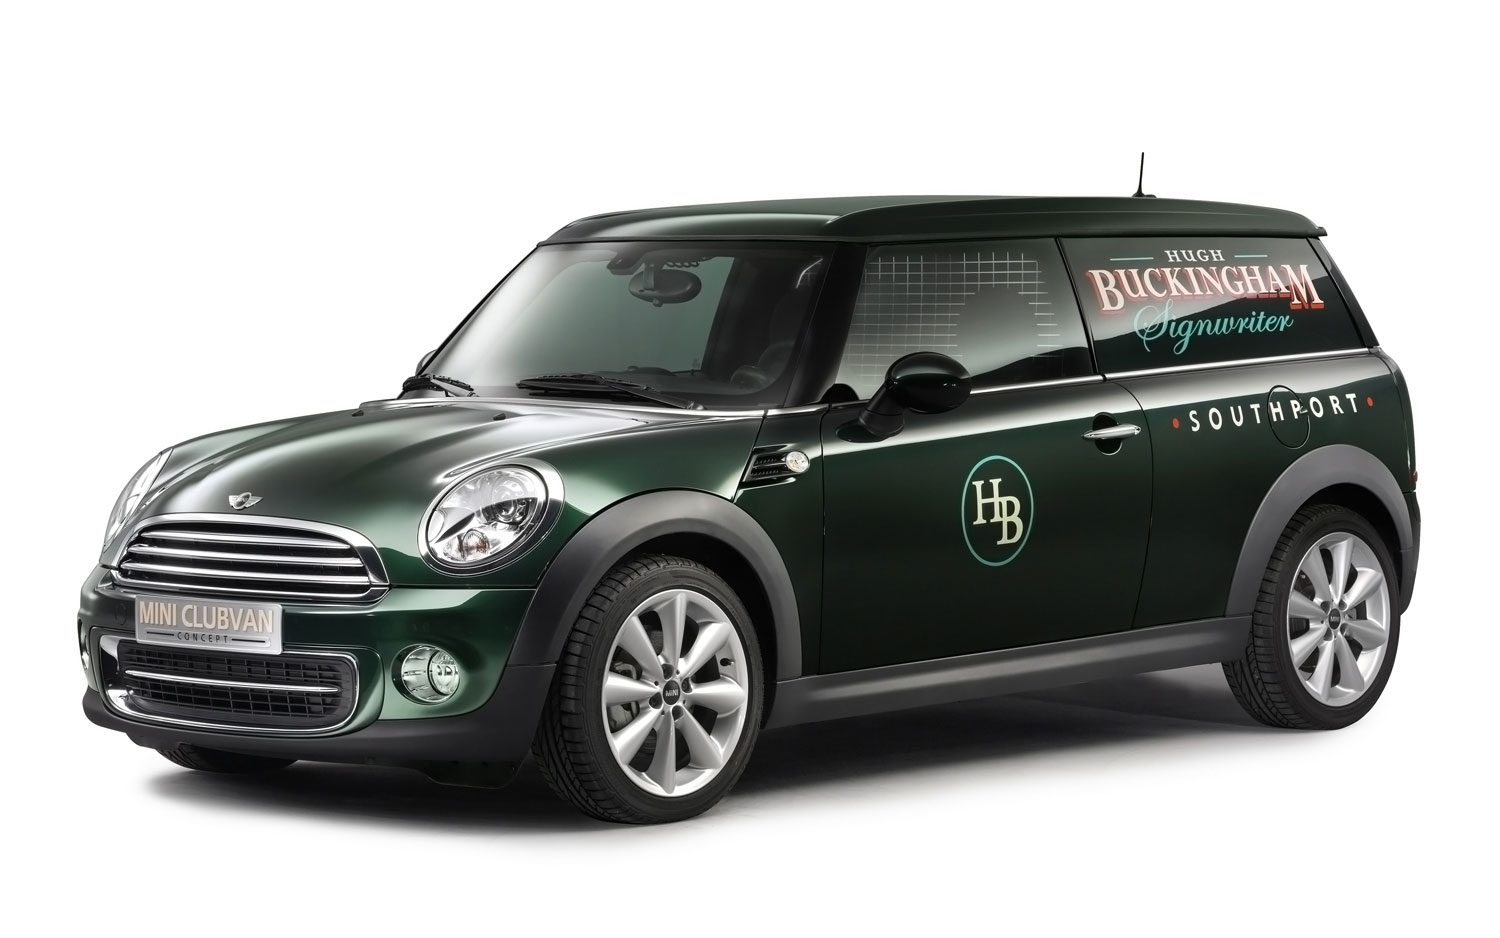 2013 Mini Clubvan Concept Front Three Quarters View1